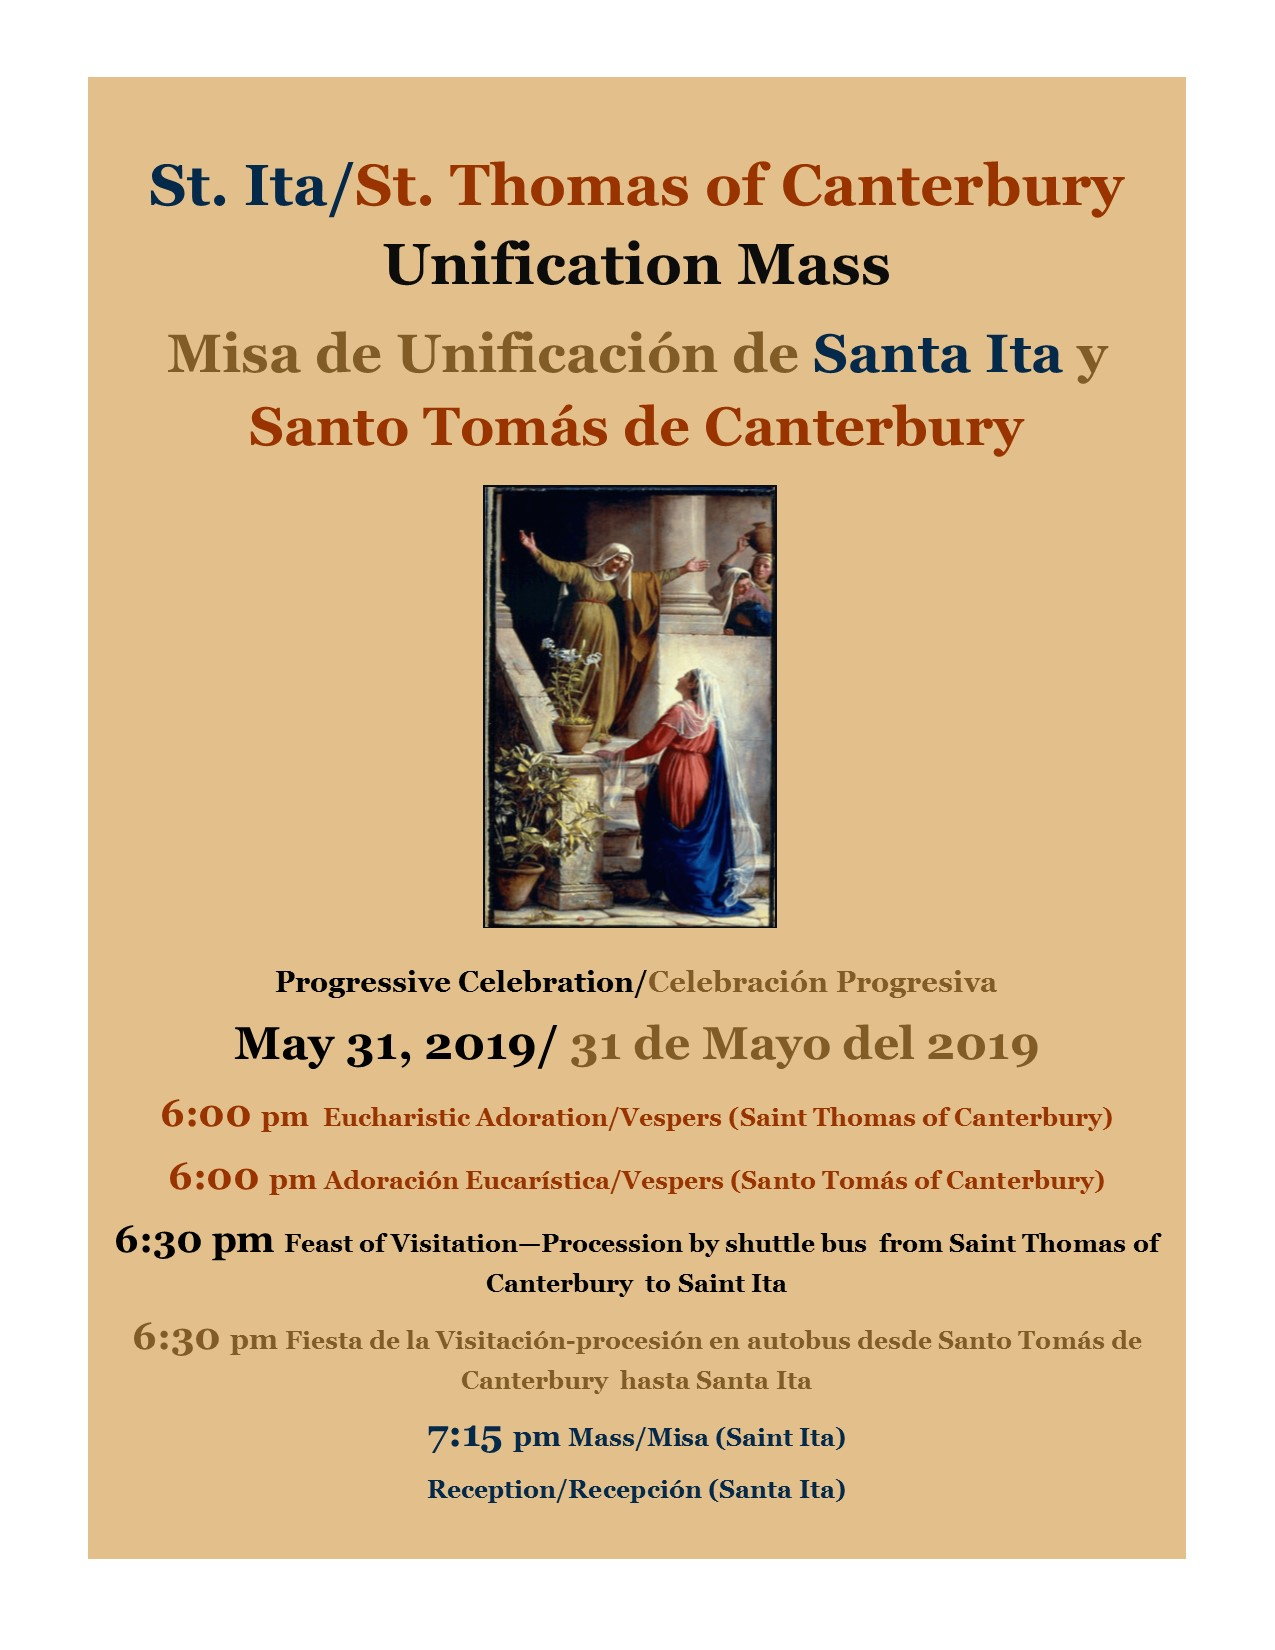 UnificationMass.5.31.19.jpg